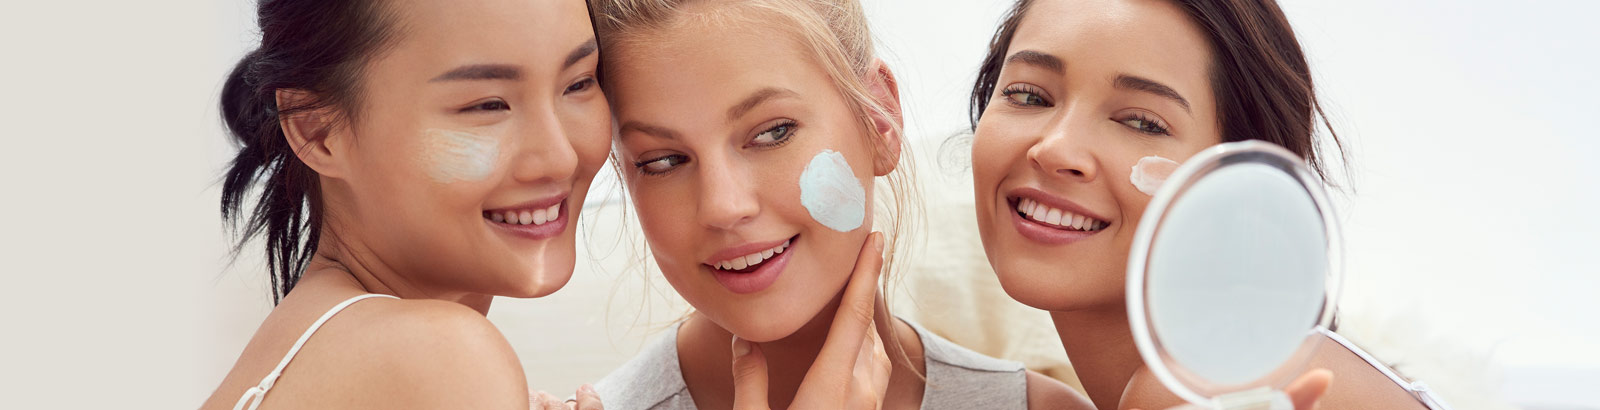 Dehydrated skin: what should I do? Discover our expert advice to properly hydrate your skin.